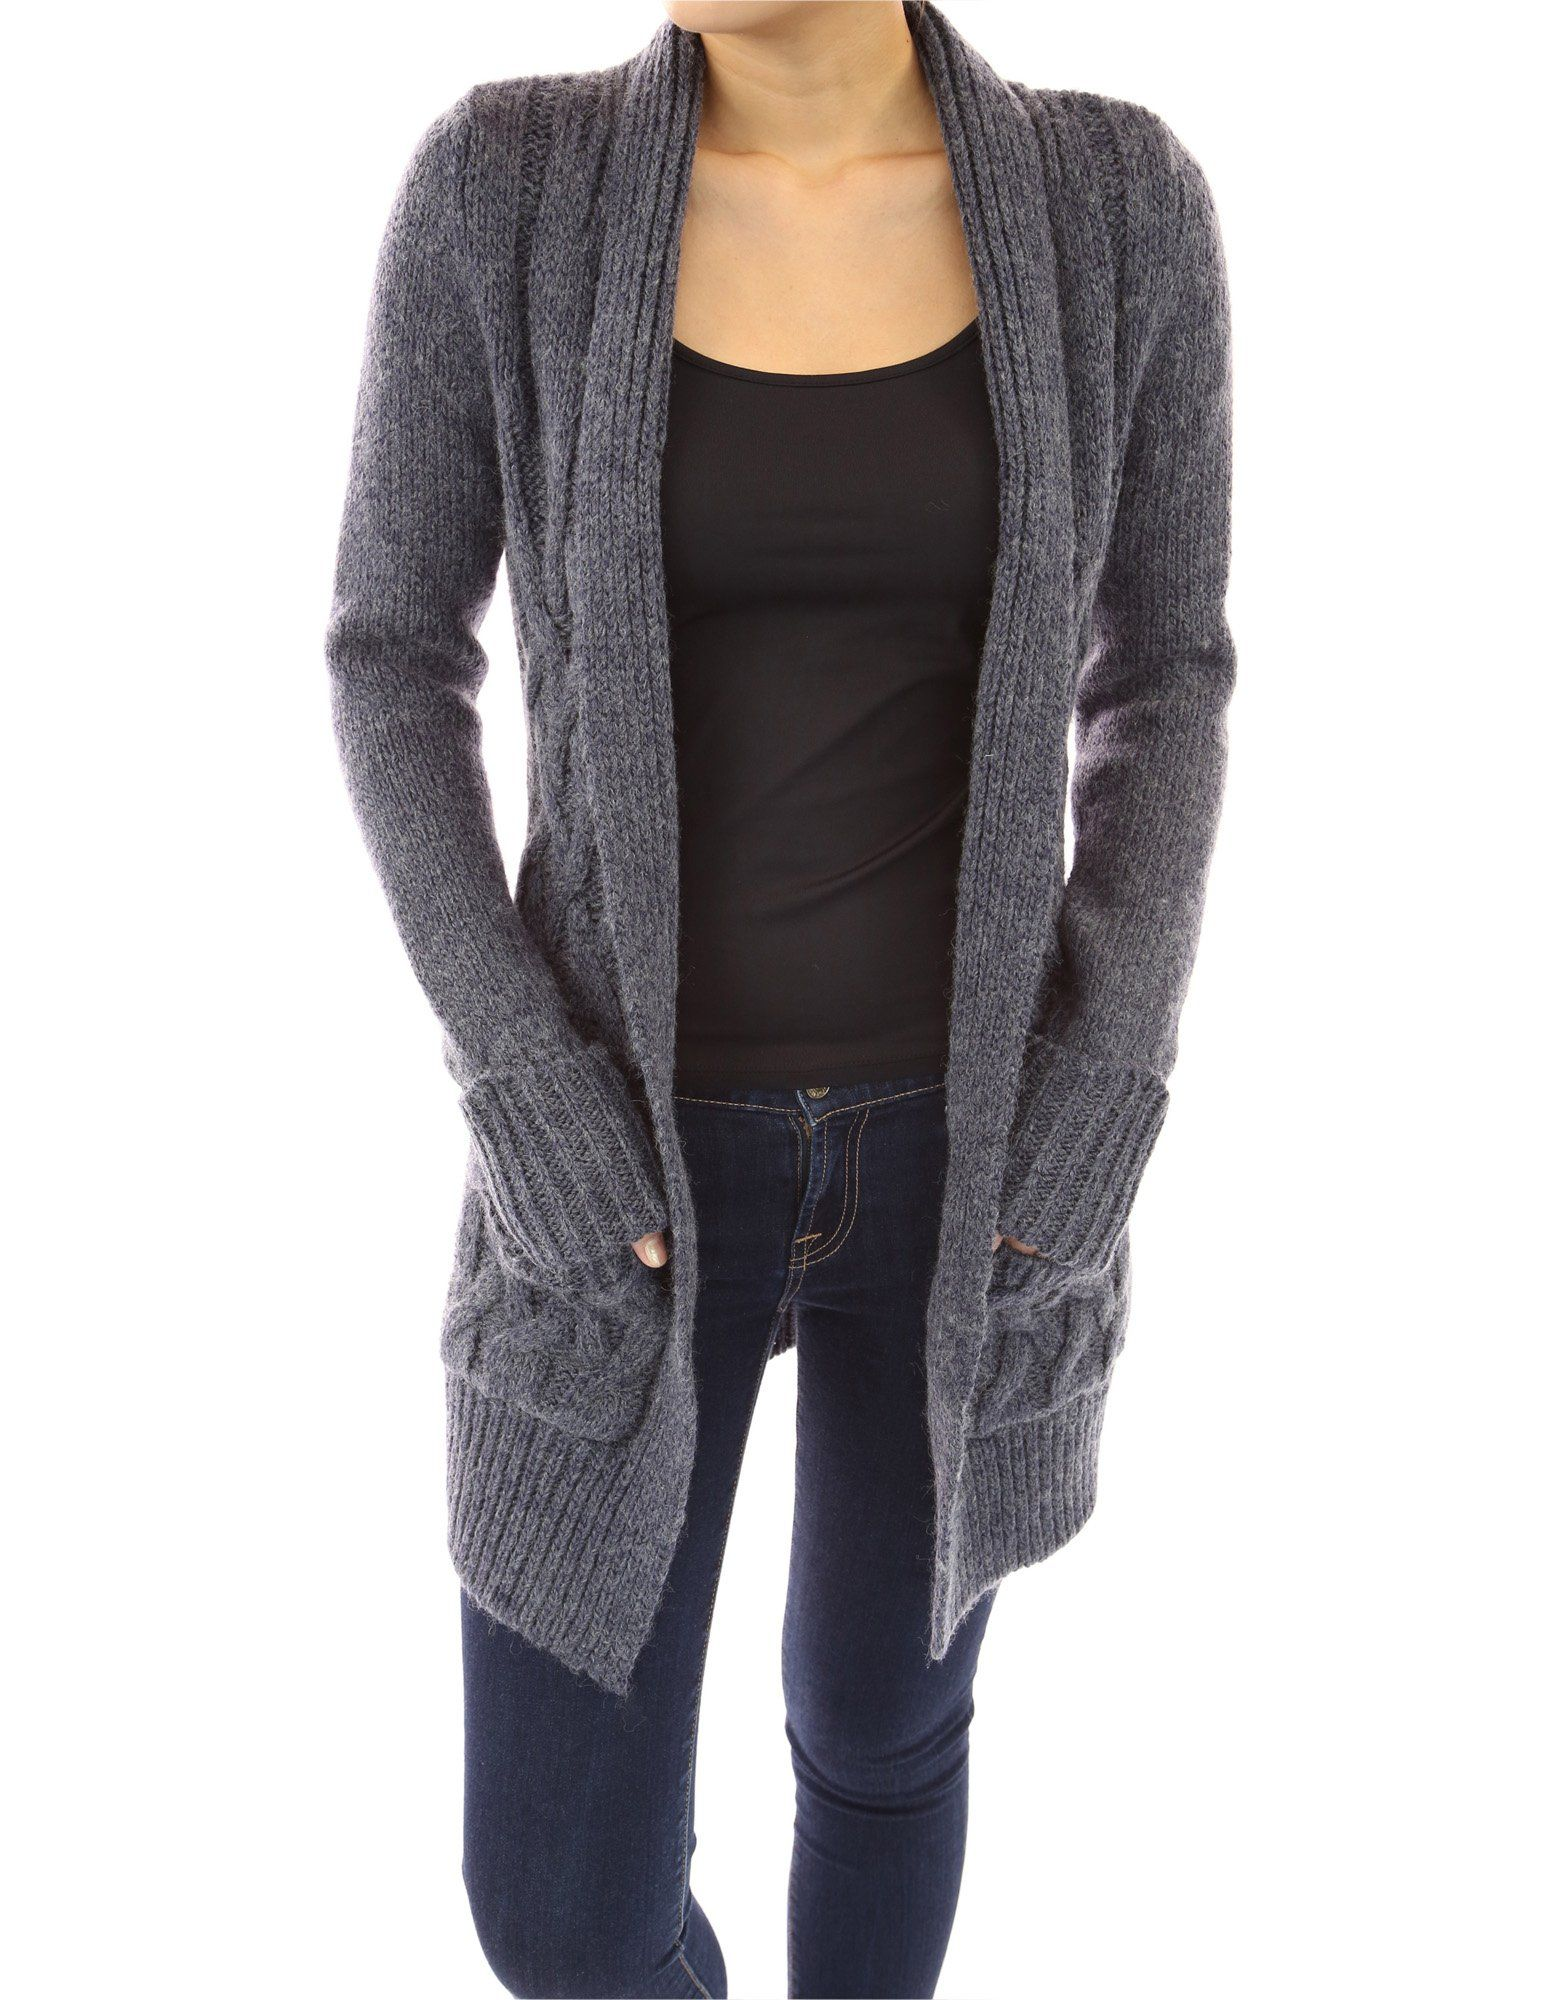 PattyBoutik Wool Blend Pockets Open Front Sweater Cardigan ...